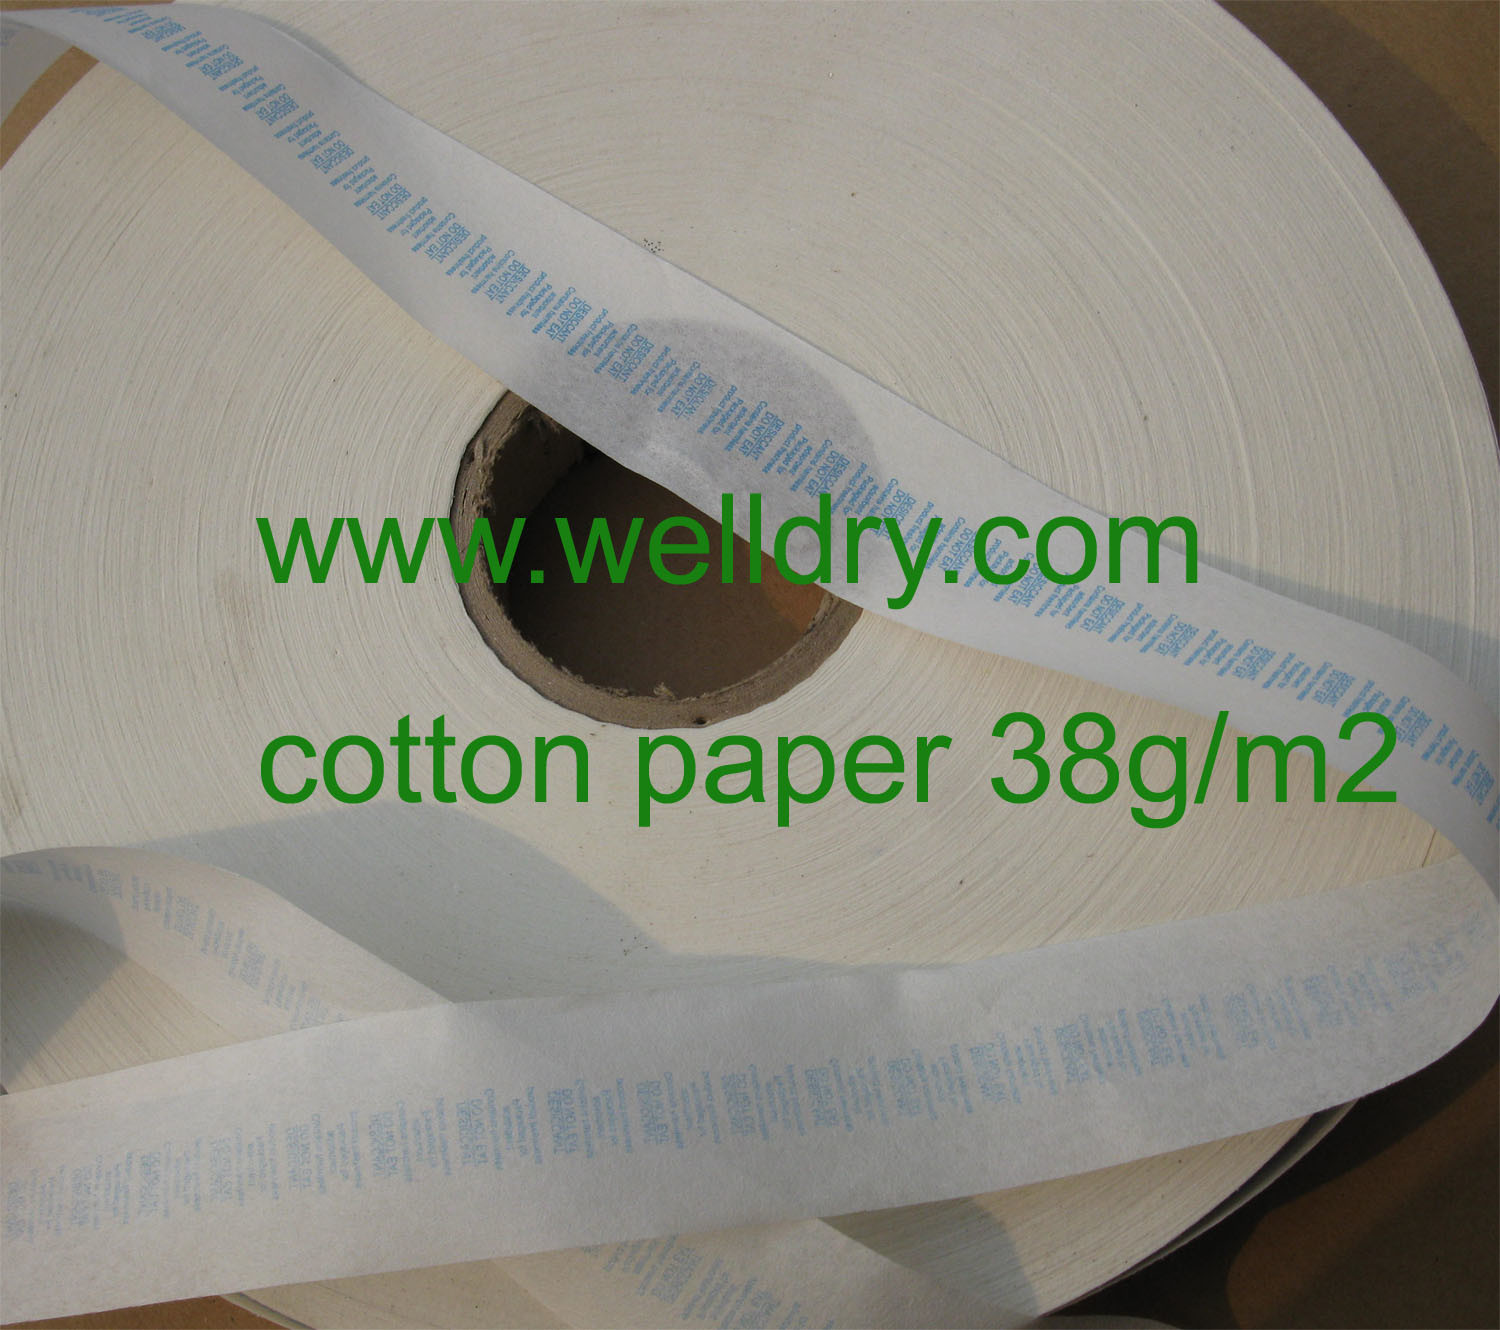 Packaging Paper for Silica Gel Desiccant, Cotton Paper